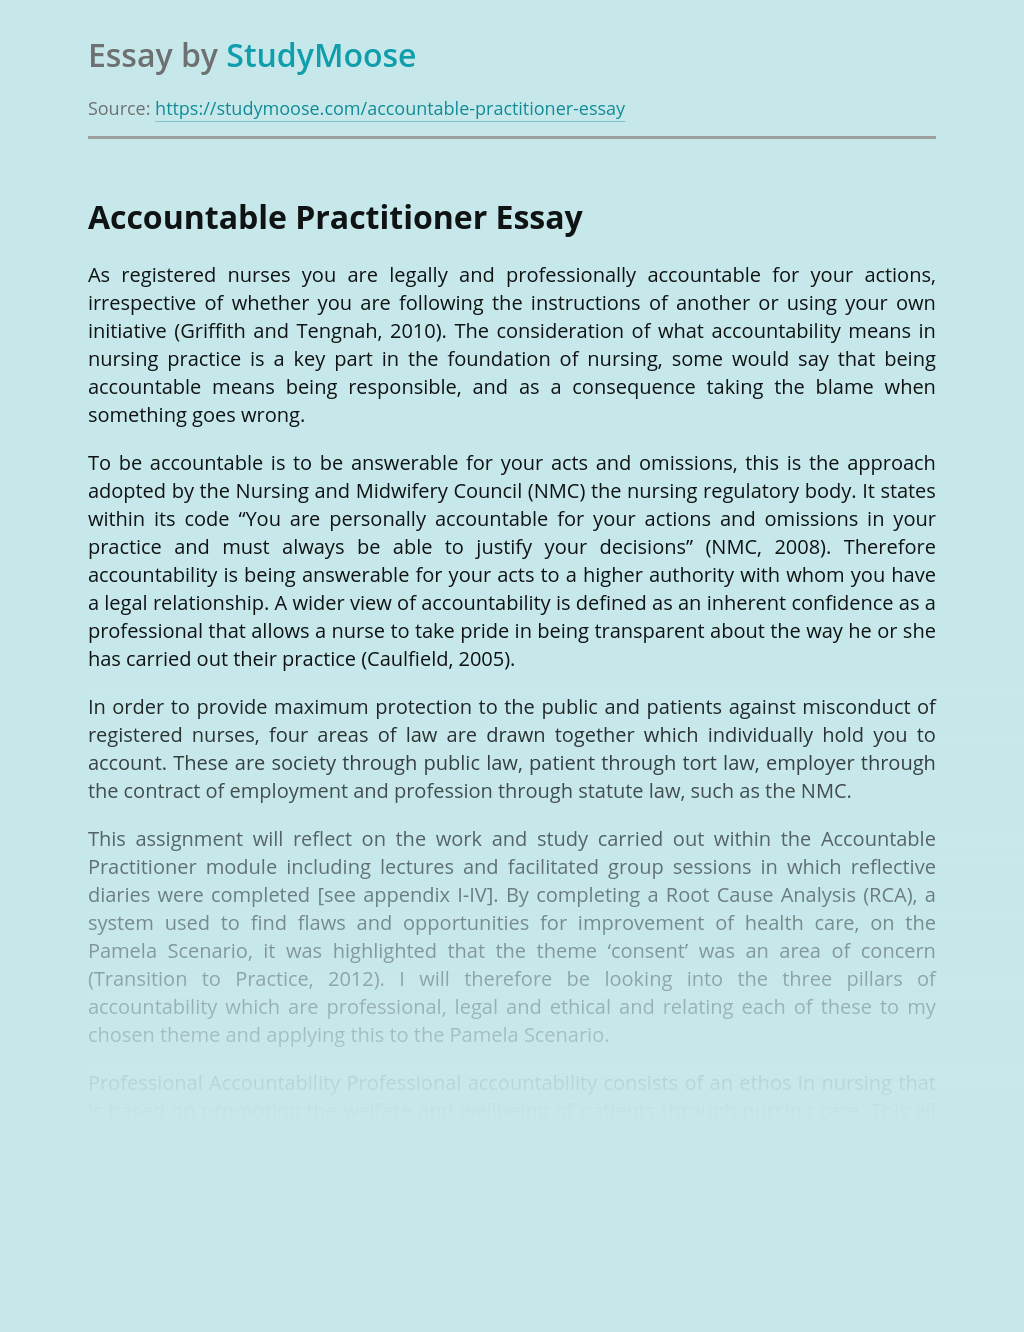 Types of Accountability in Nursing